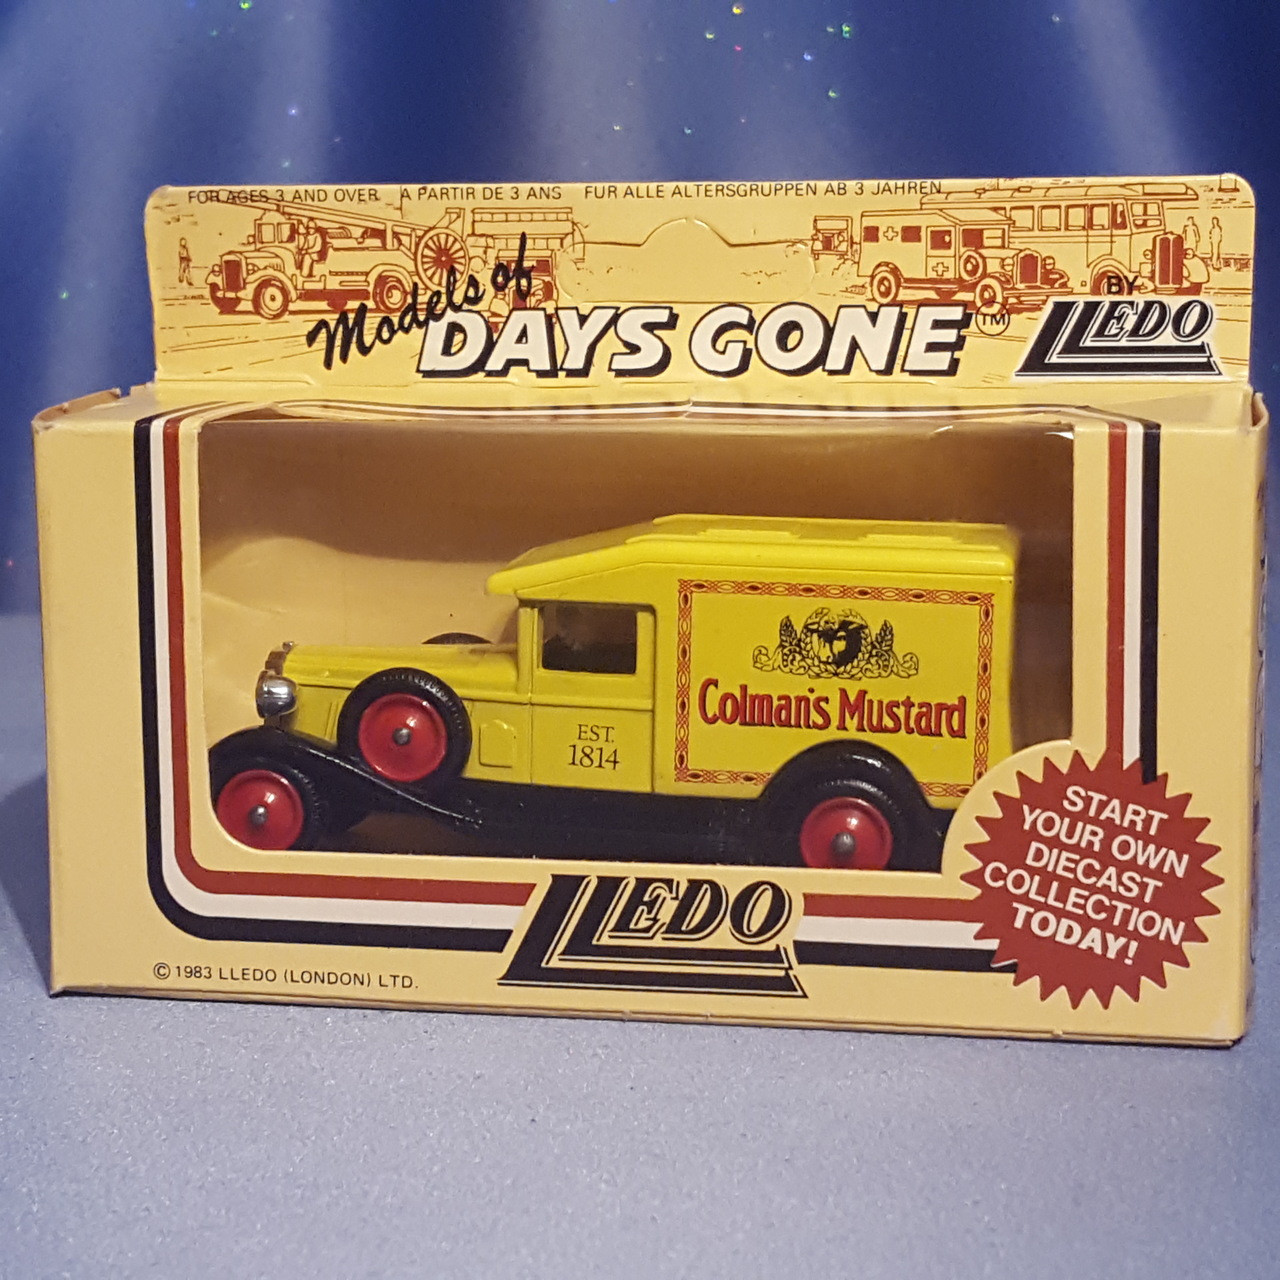 1930's Delivery Truck - Models of Days Gone by Lledo.